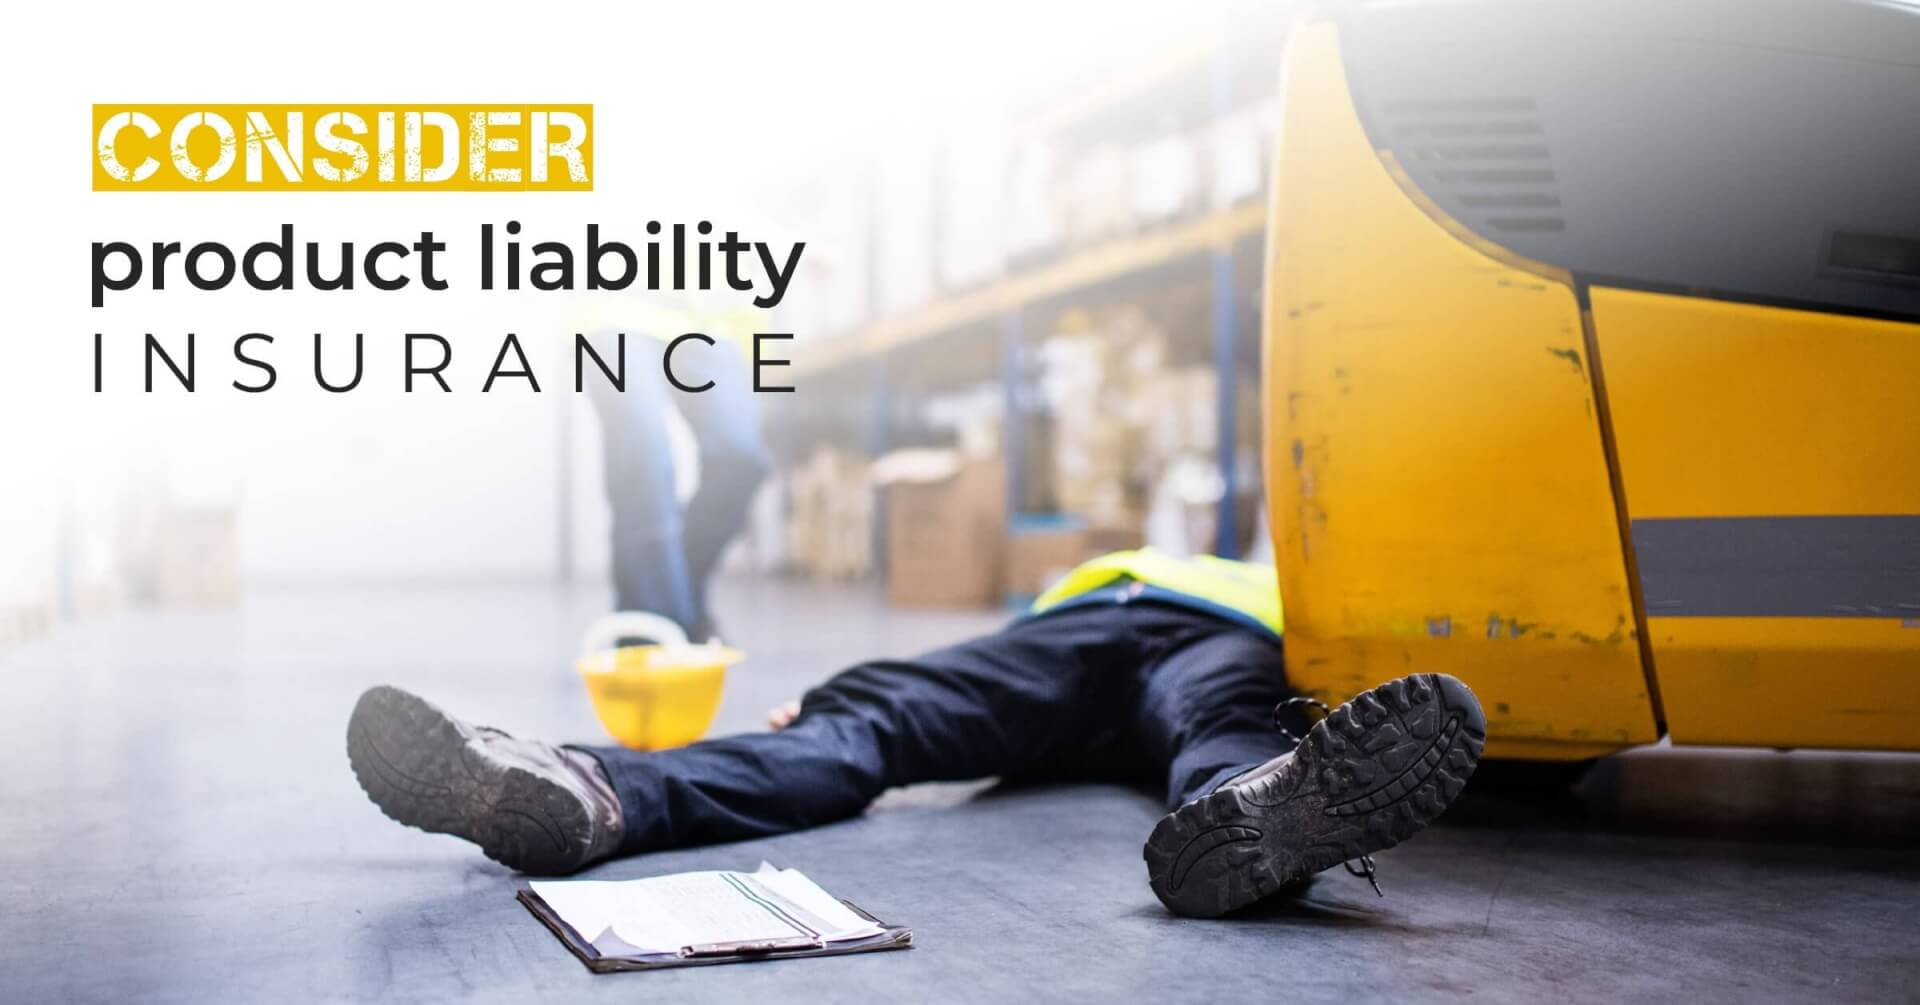 Social Business - Consider Product Liability Insurance